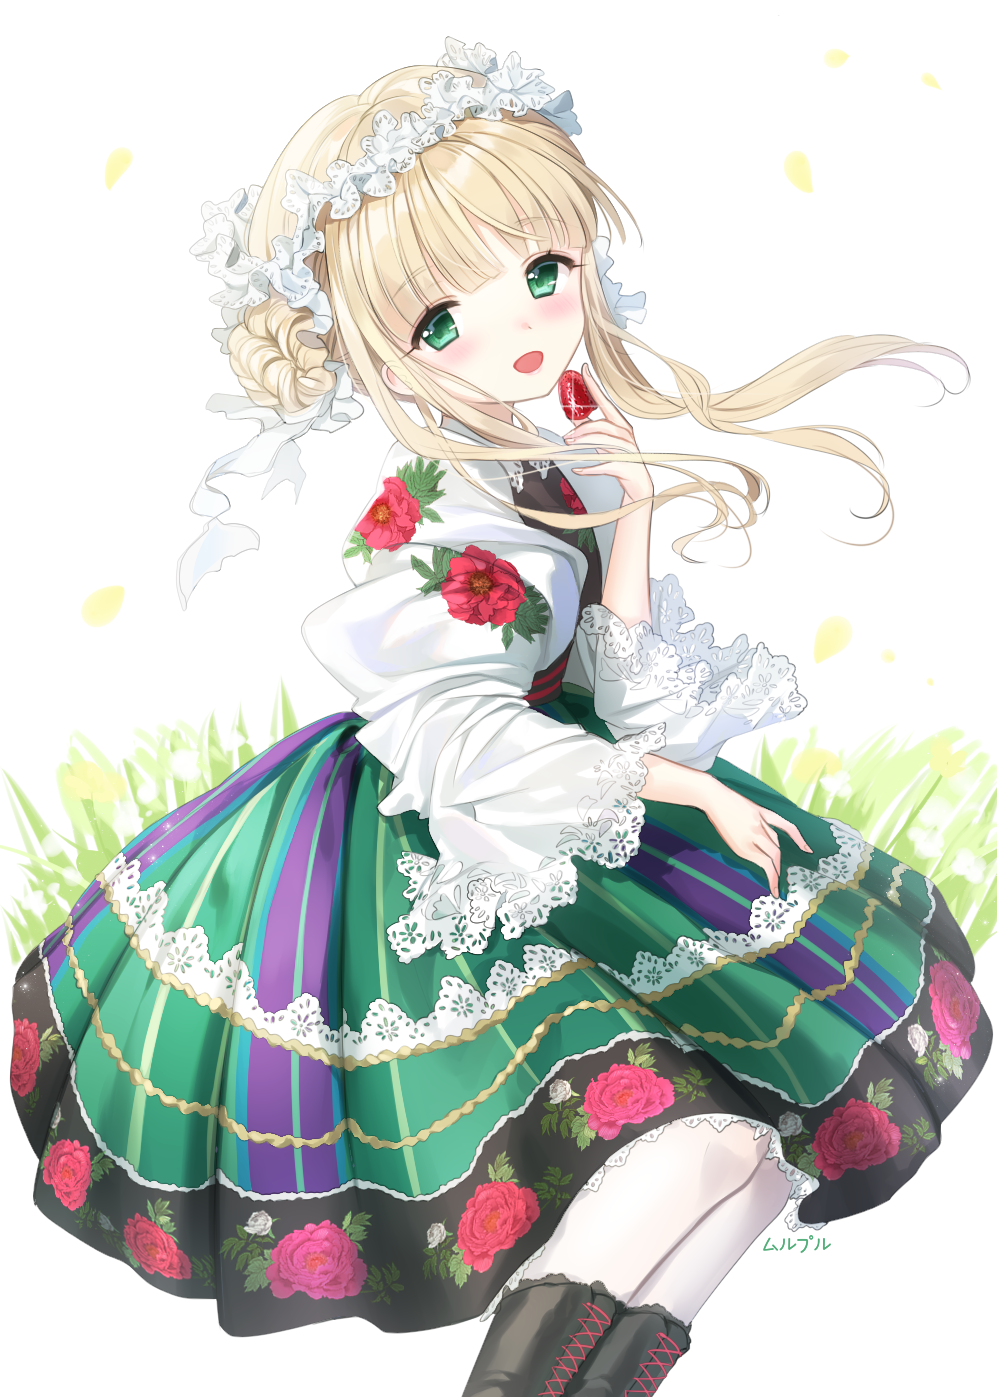 1girl :d bangs black_footwear blonde_hair blush boots commentary_request cross-laced_footwear eyebrows_visible_through_hair floral_print flower food fruit green_eyes green_skirt hair_bun head_tilt highres holding holding_food holding_fruit lace-up_boots long_hair long_sleeves mullpull open_mouth original pantyhose print_skirt puffy_long_sleeves puffy_sleeves rose_print side_bun sidelocks signature skirt smile solo strawberry traditional_clothes white_background white_flower white_legwear wide_sleeves yellow_flower